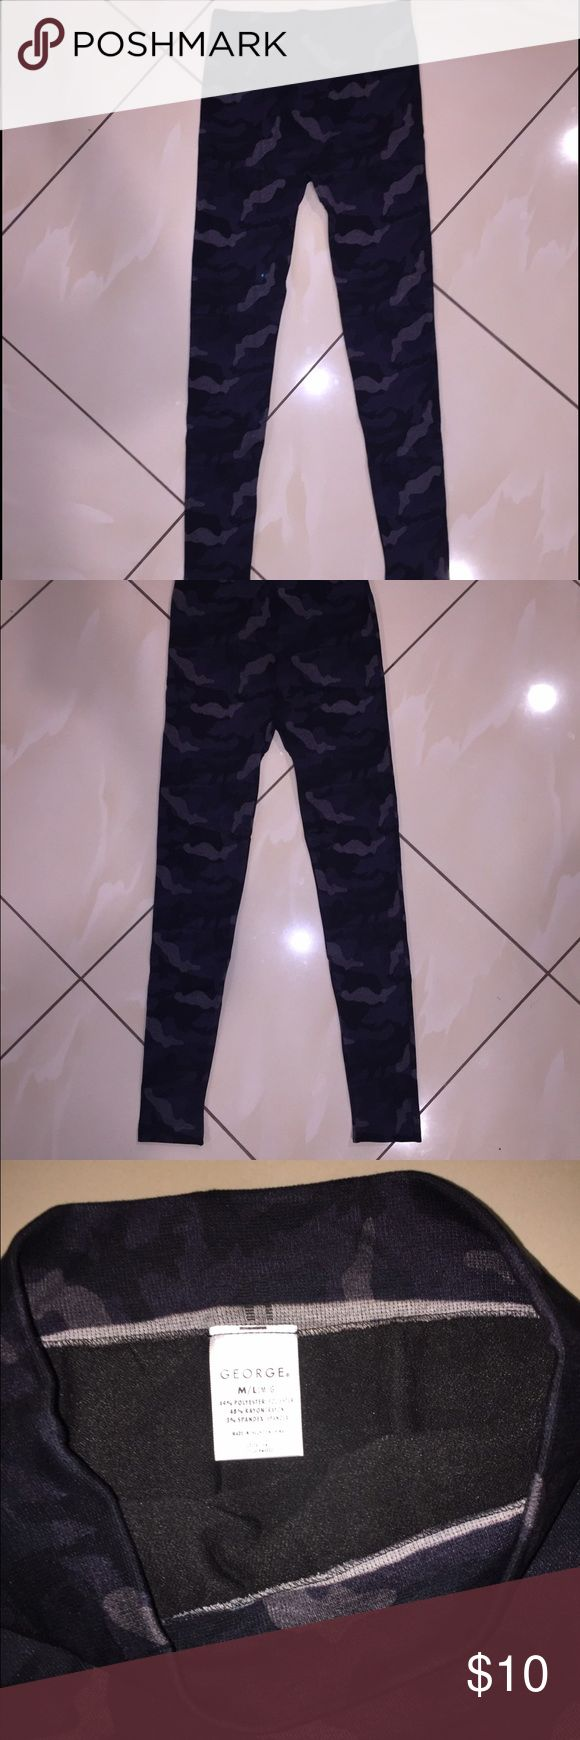 BNWT Camouflage Leggings Brand New without tags! Camouflage women's leggings size M/L (not Nike) Nike Pants Leggings